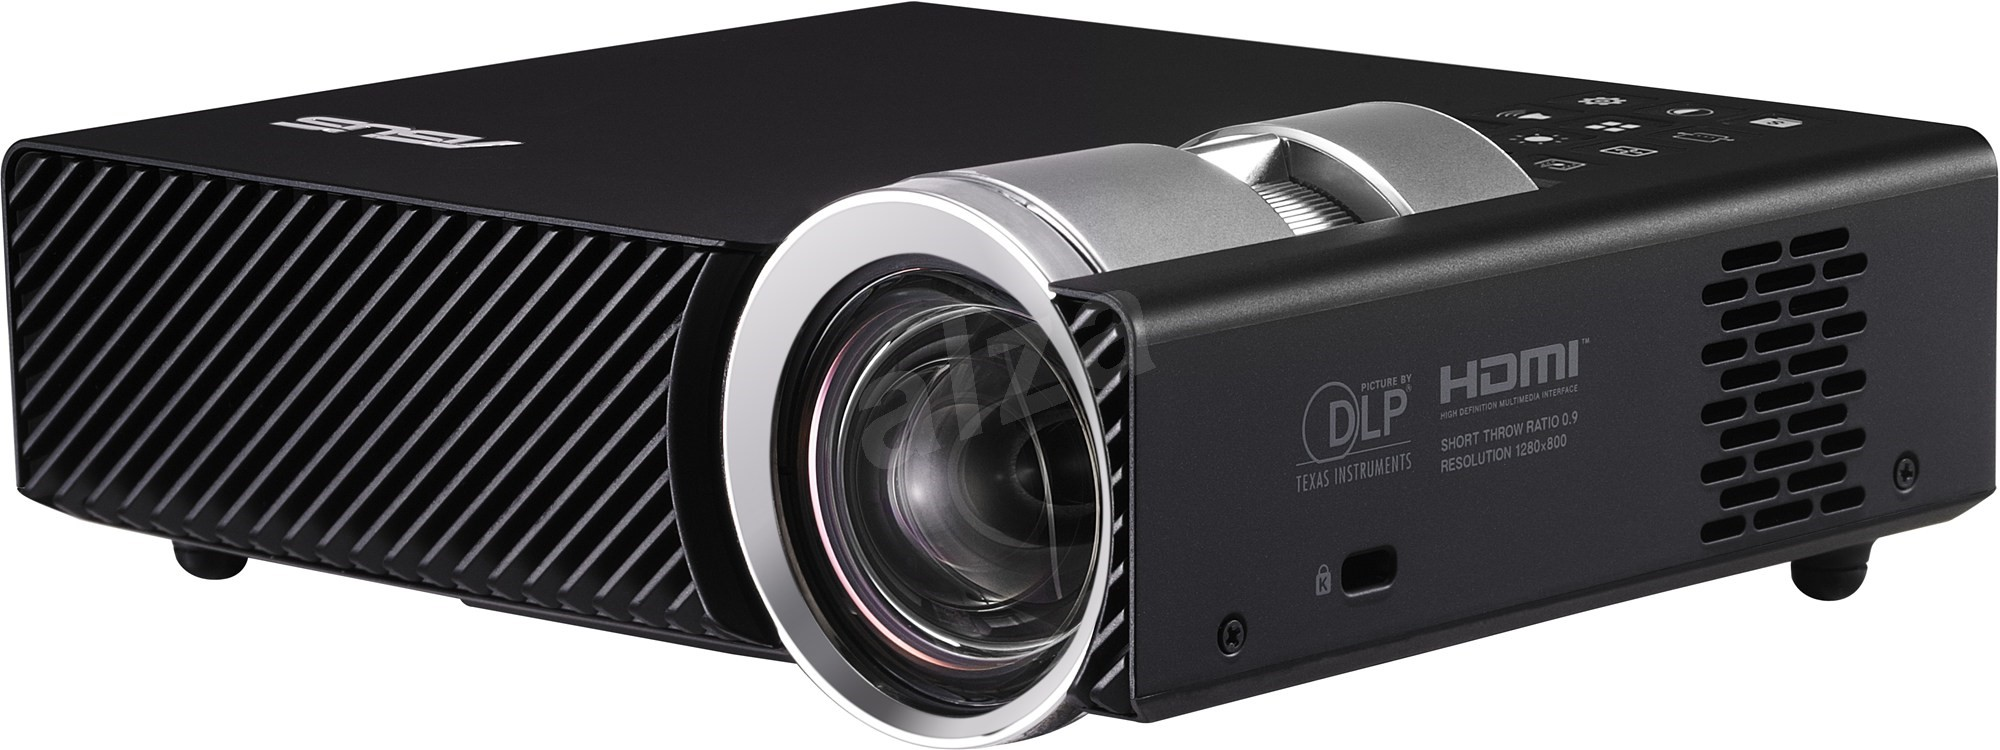 Asus b1m mini dlp projector for Pocket projector dlp